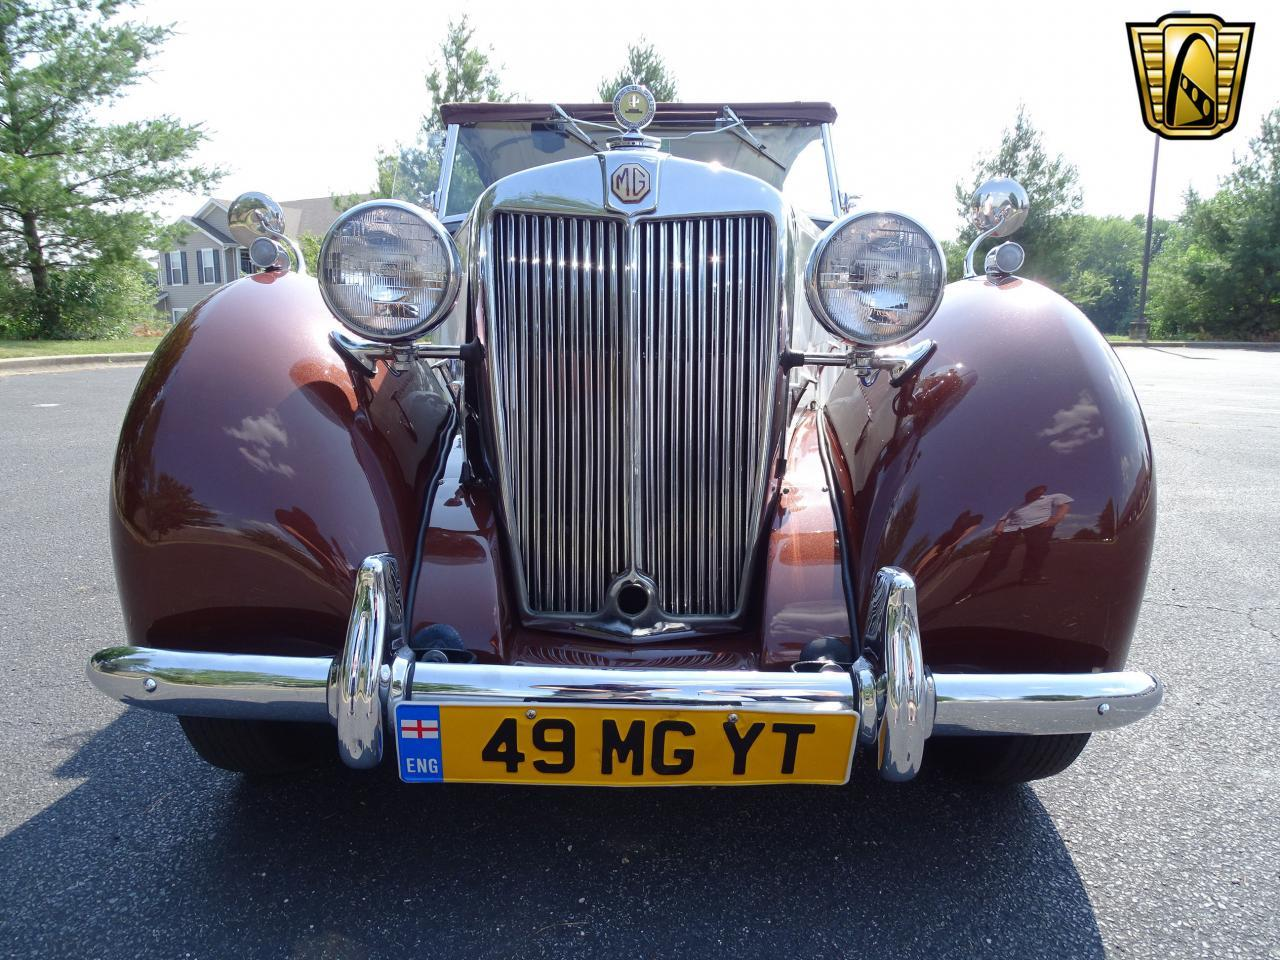 1949 MG Series YT for sale in O'Fallon, IL – photo 3